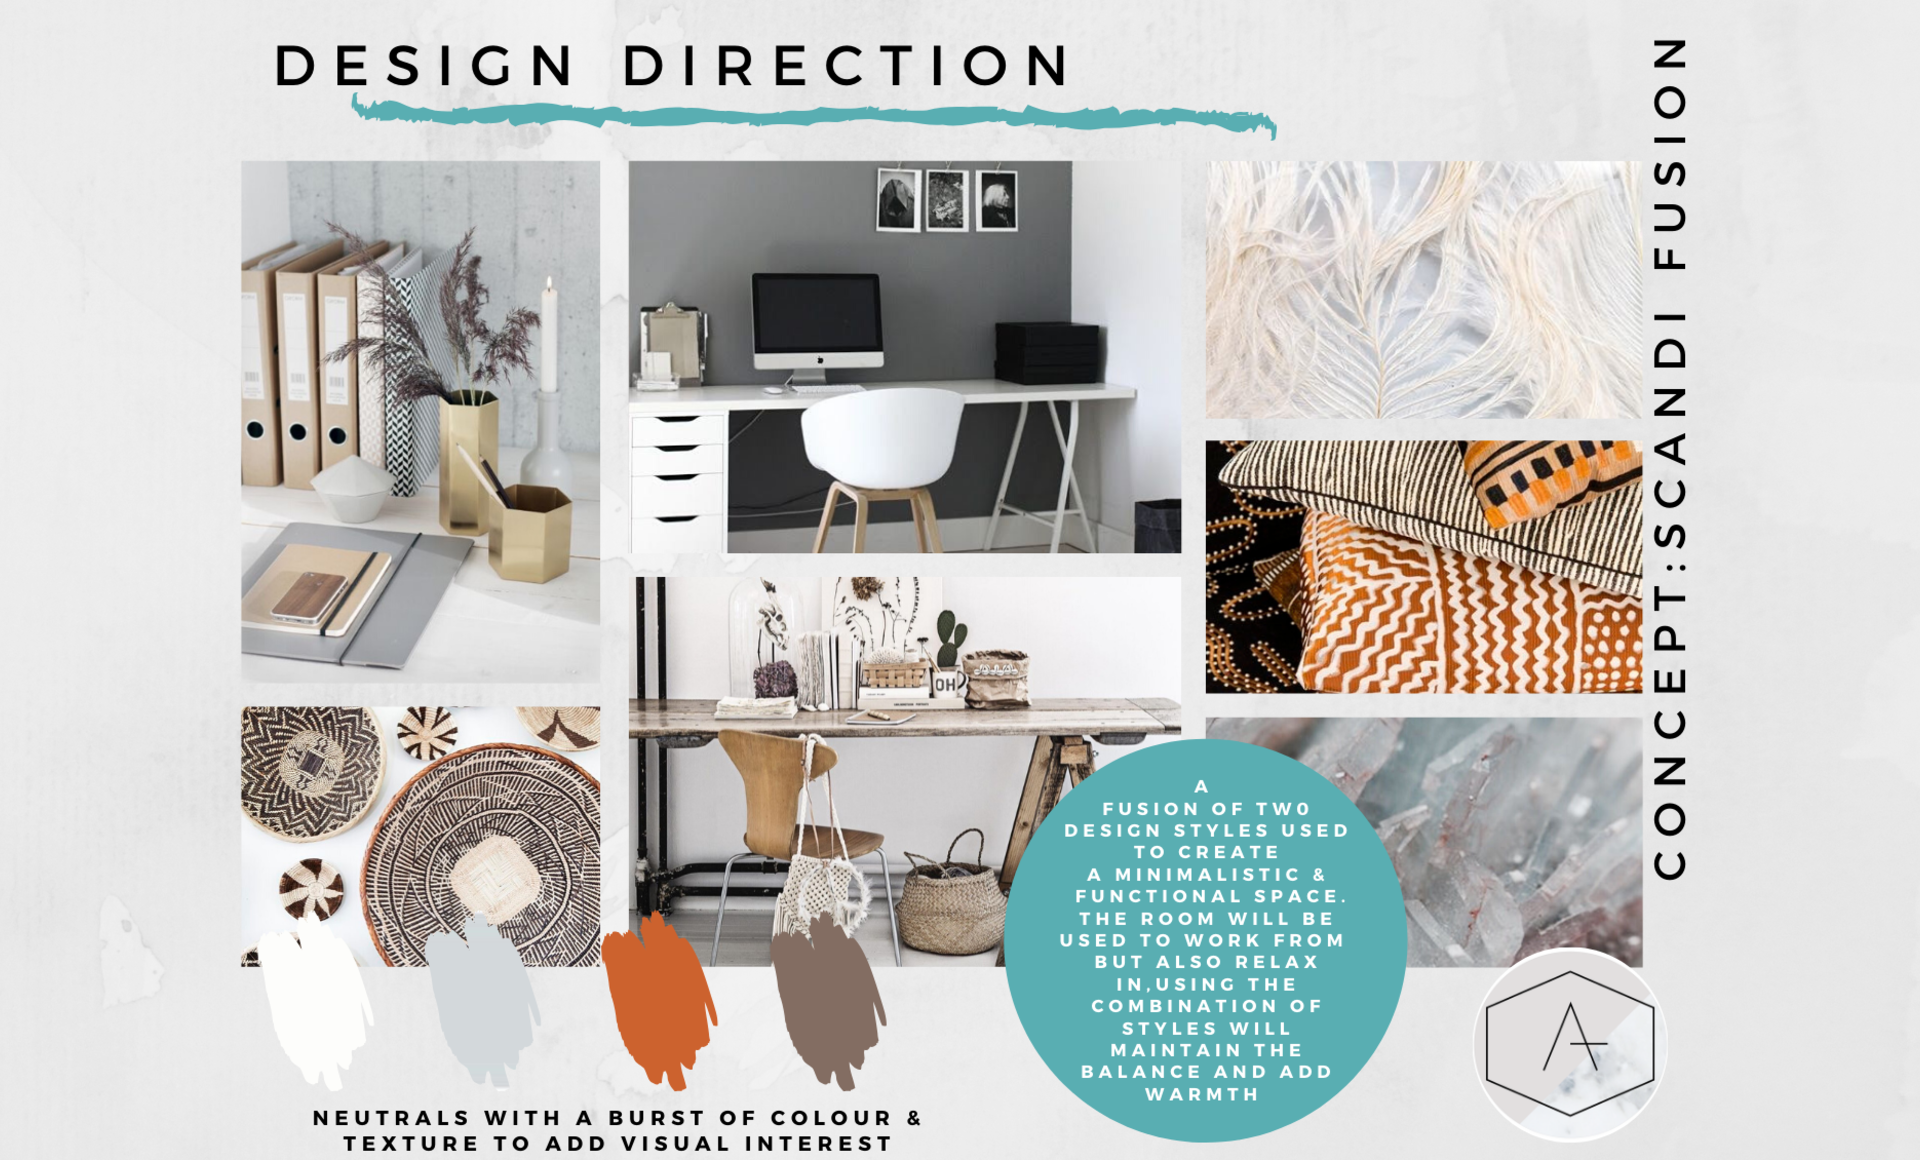 Home office refresh design direction